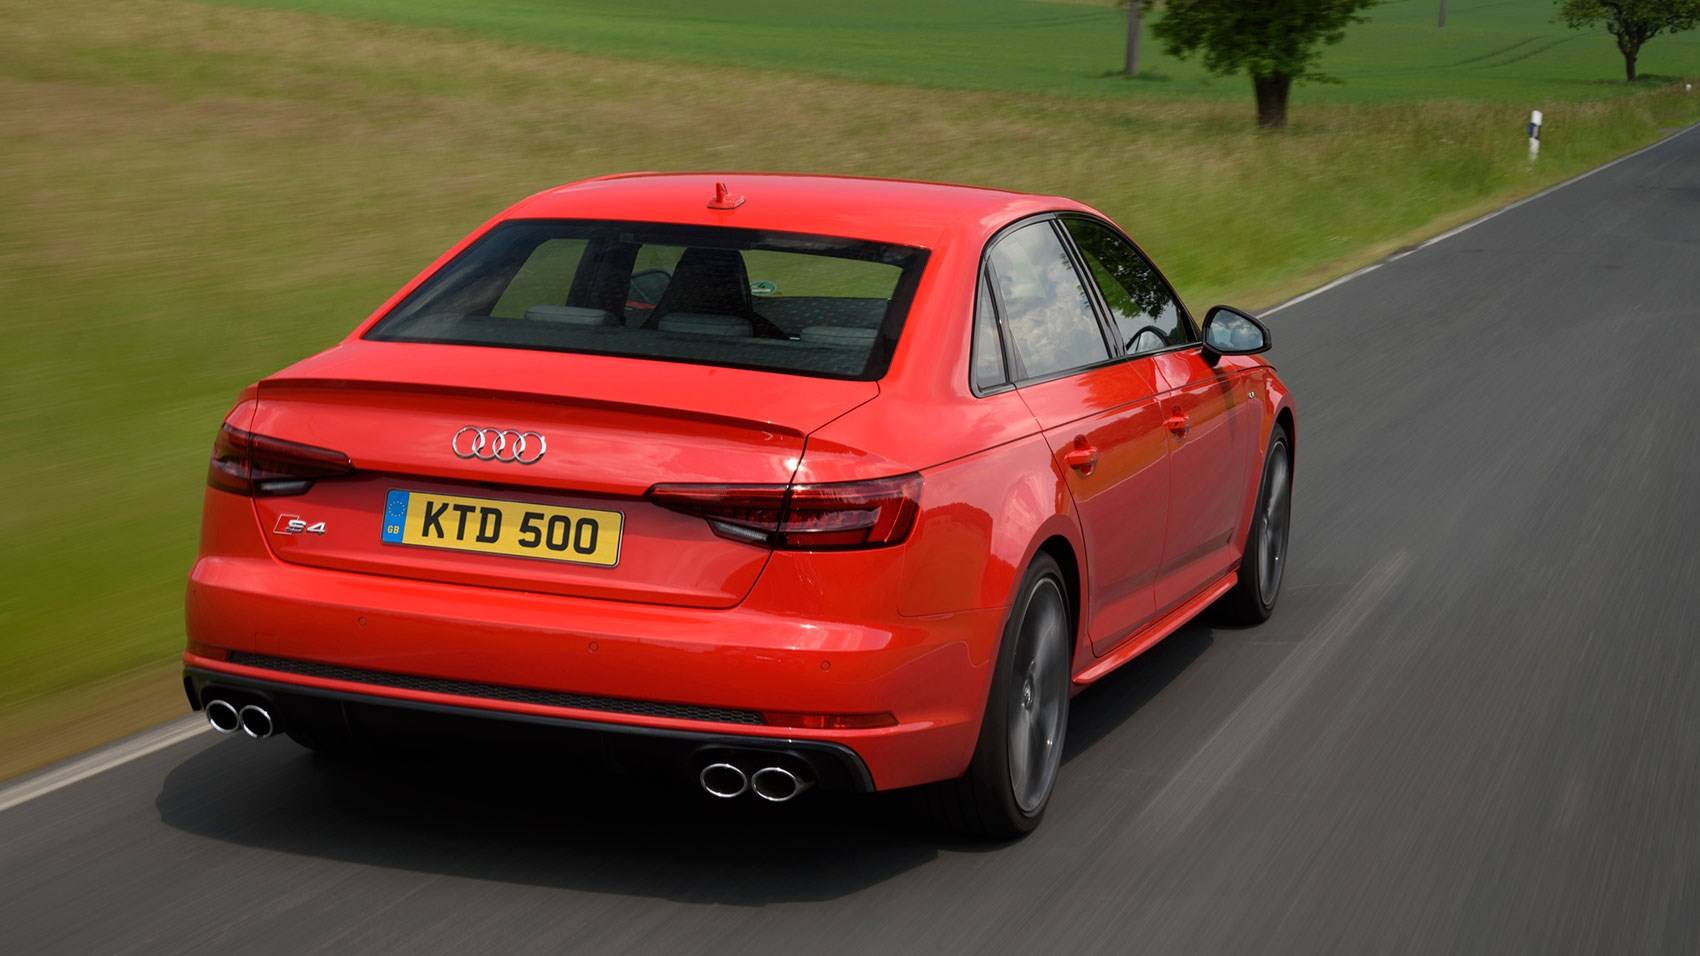 New Audi S4 saloon: the CAR magazine review